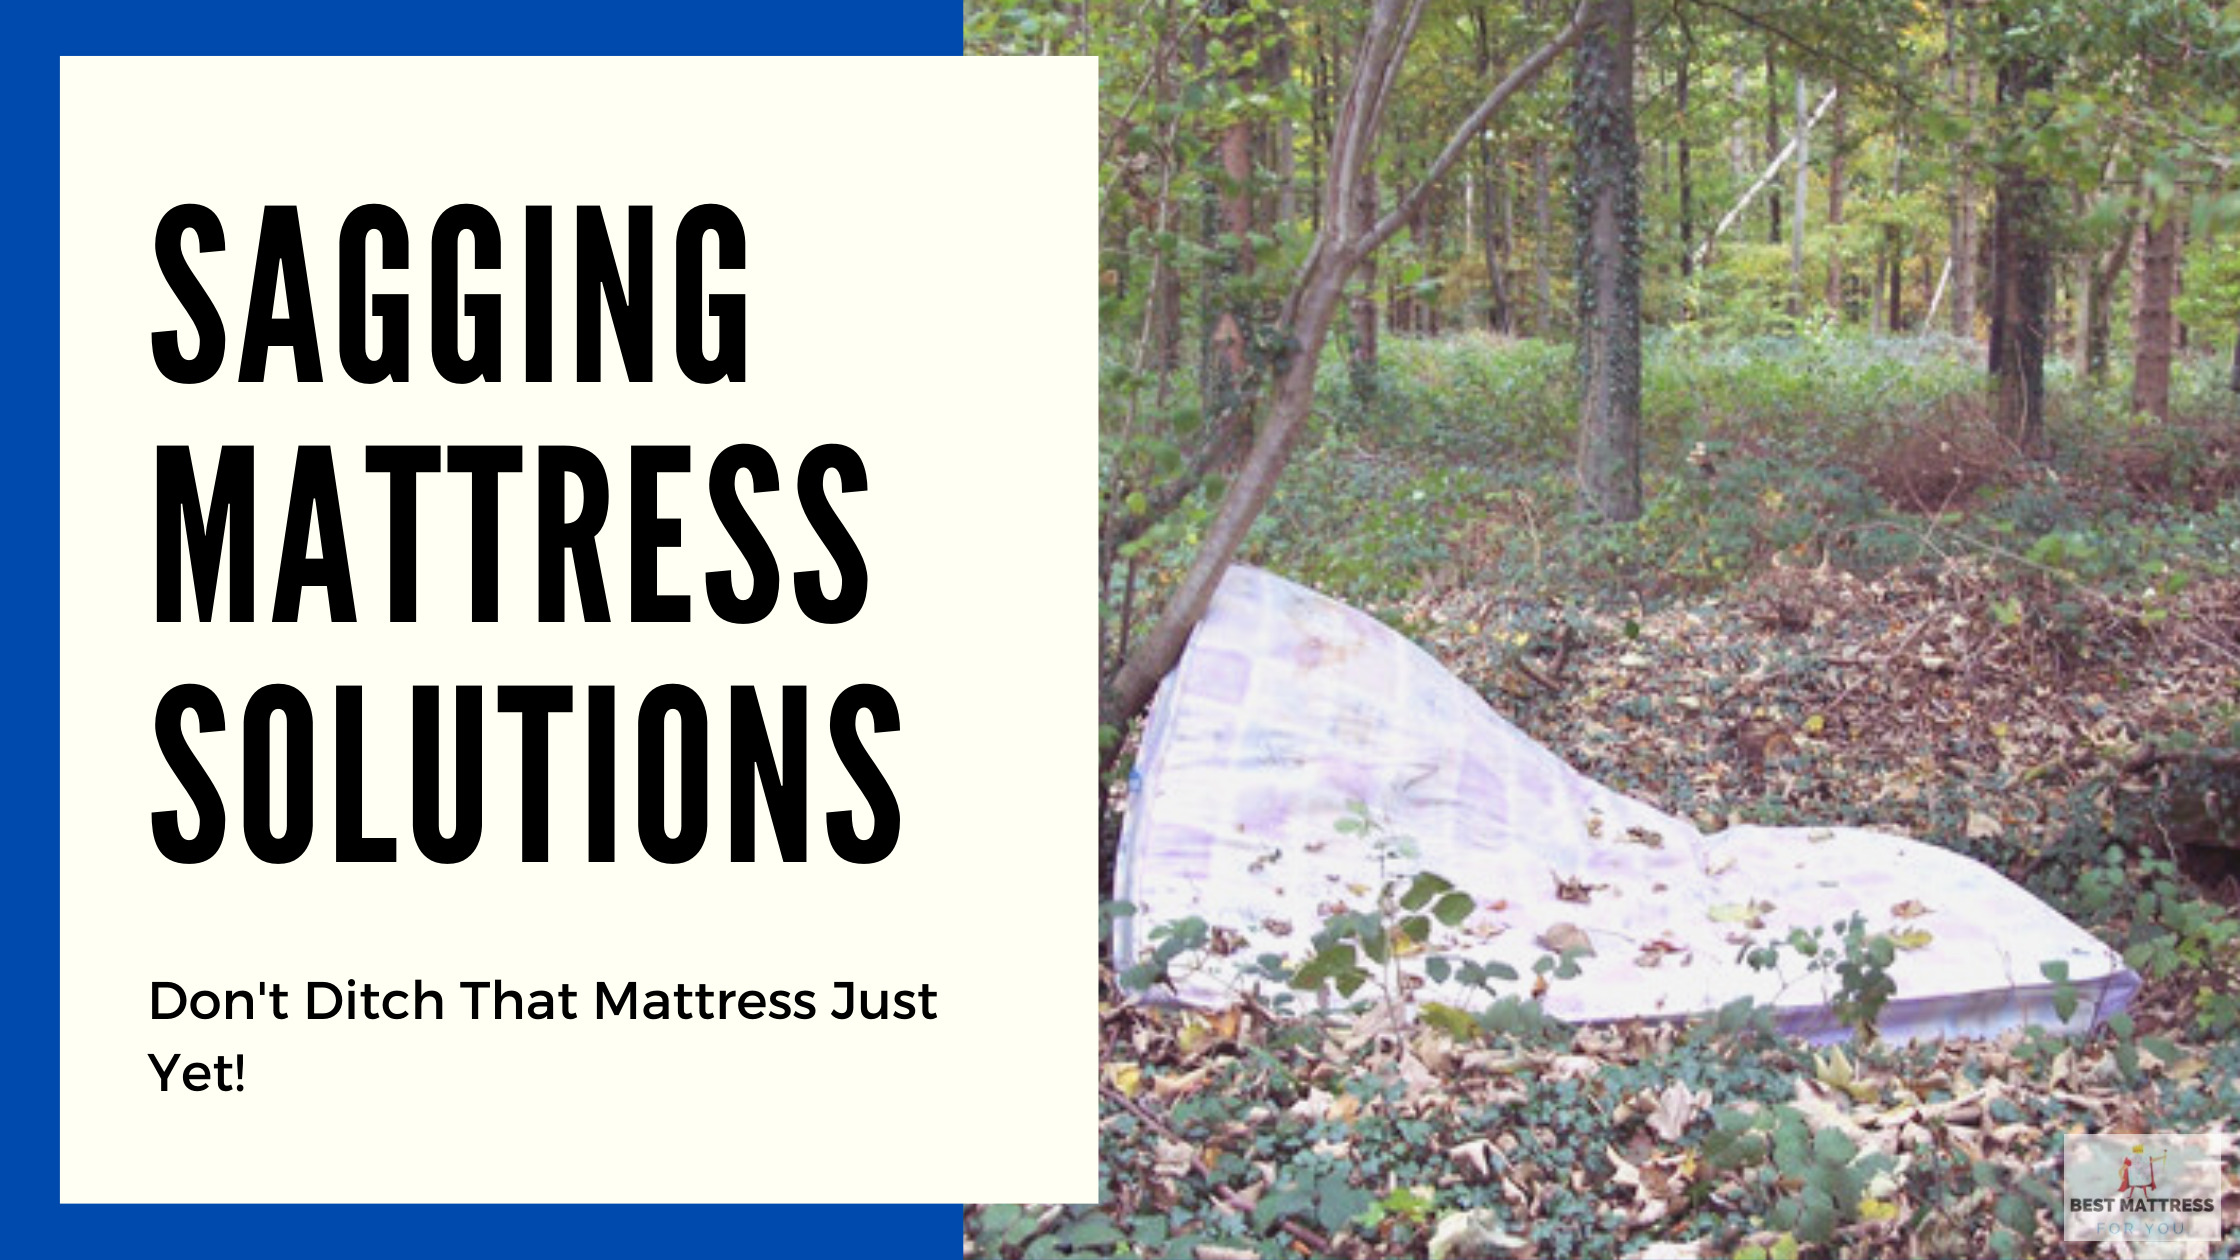 Sagging Mattress Solutions